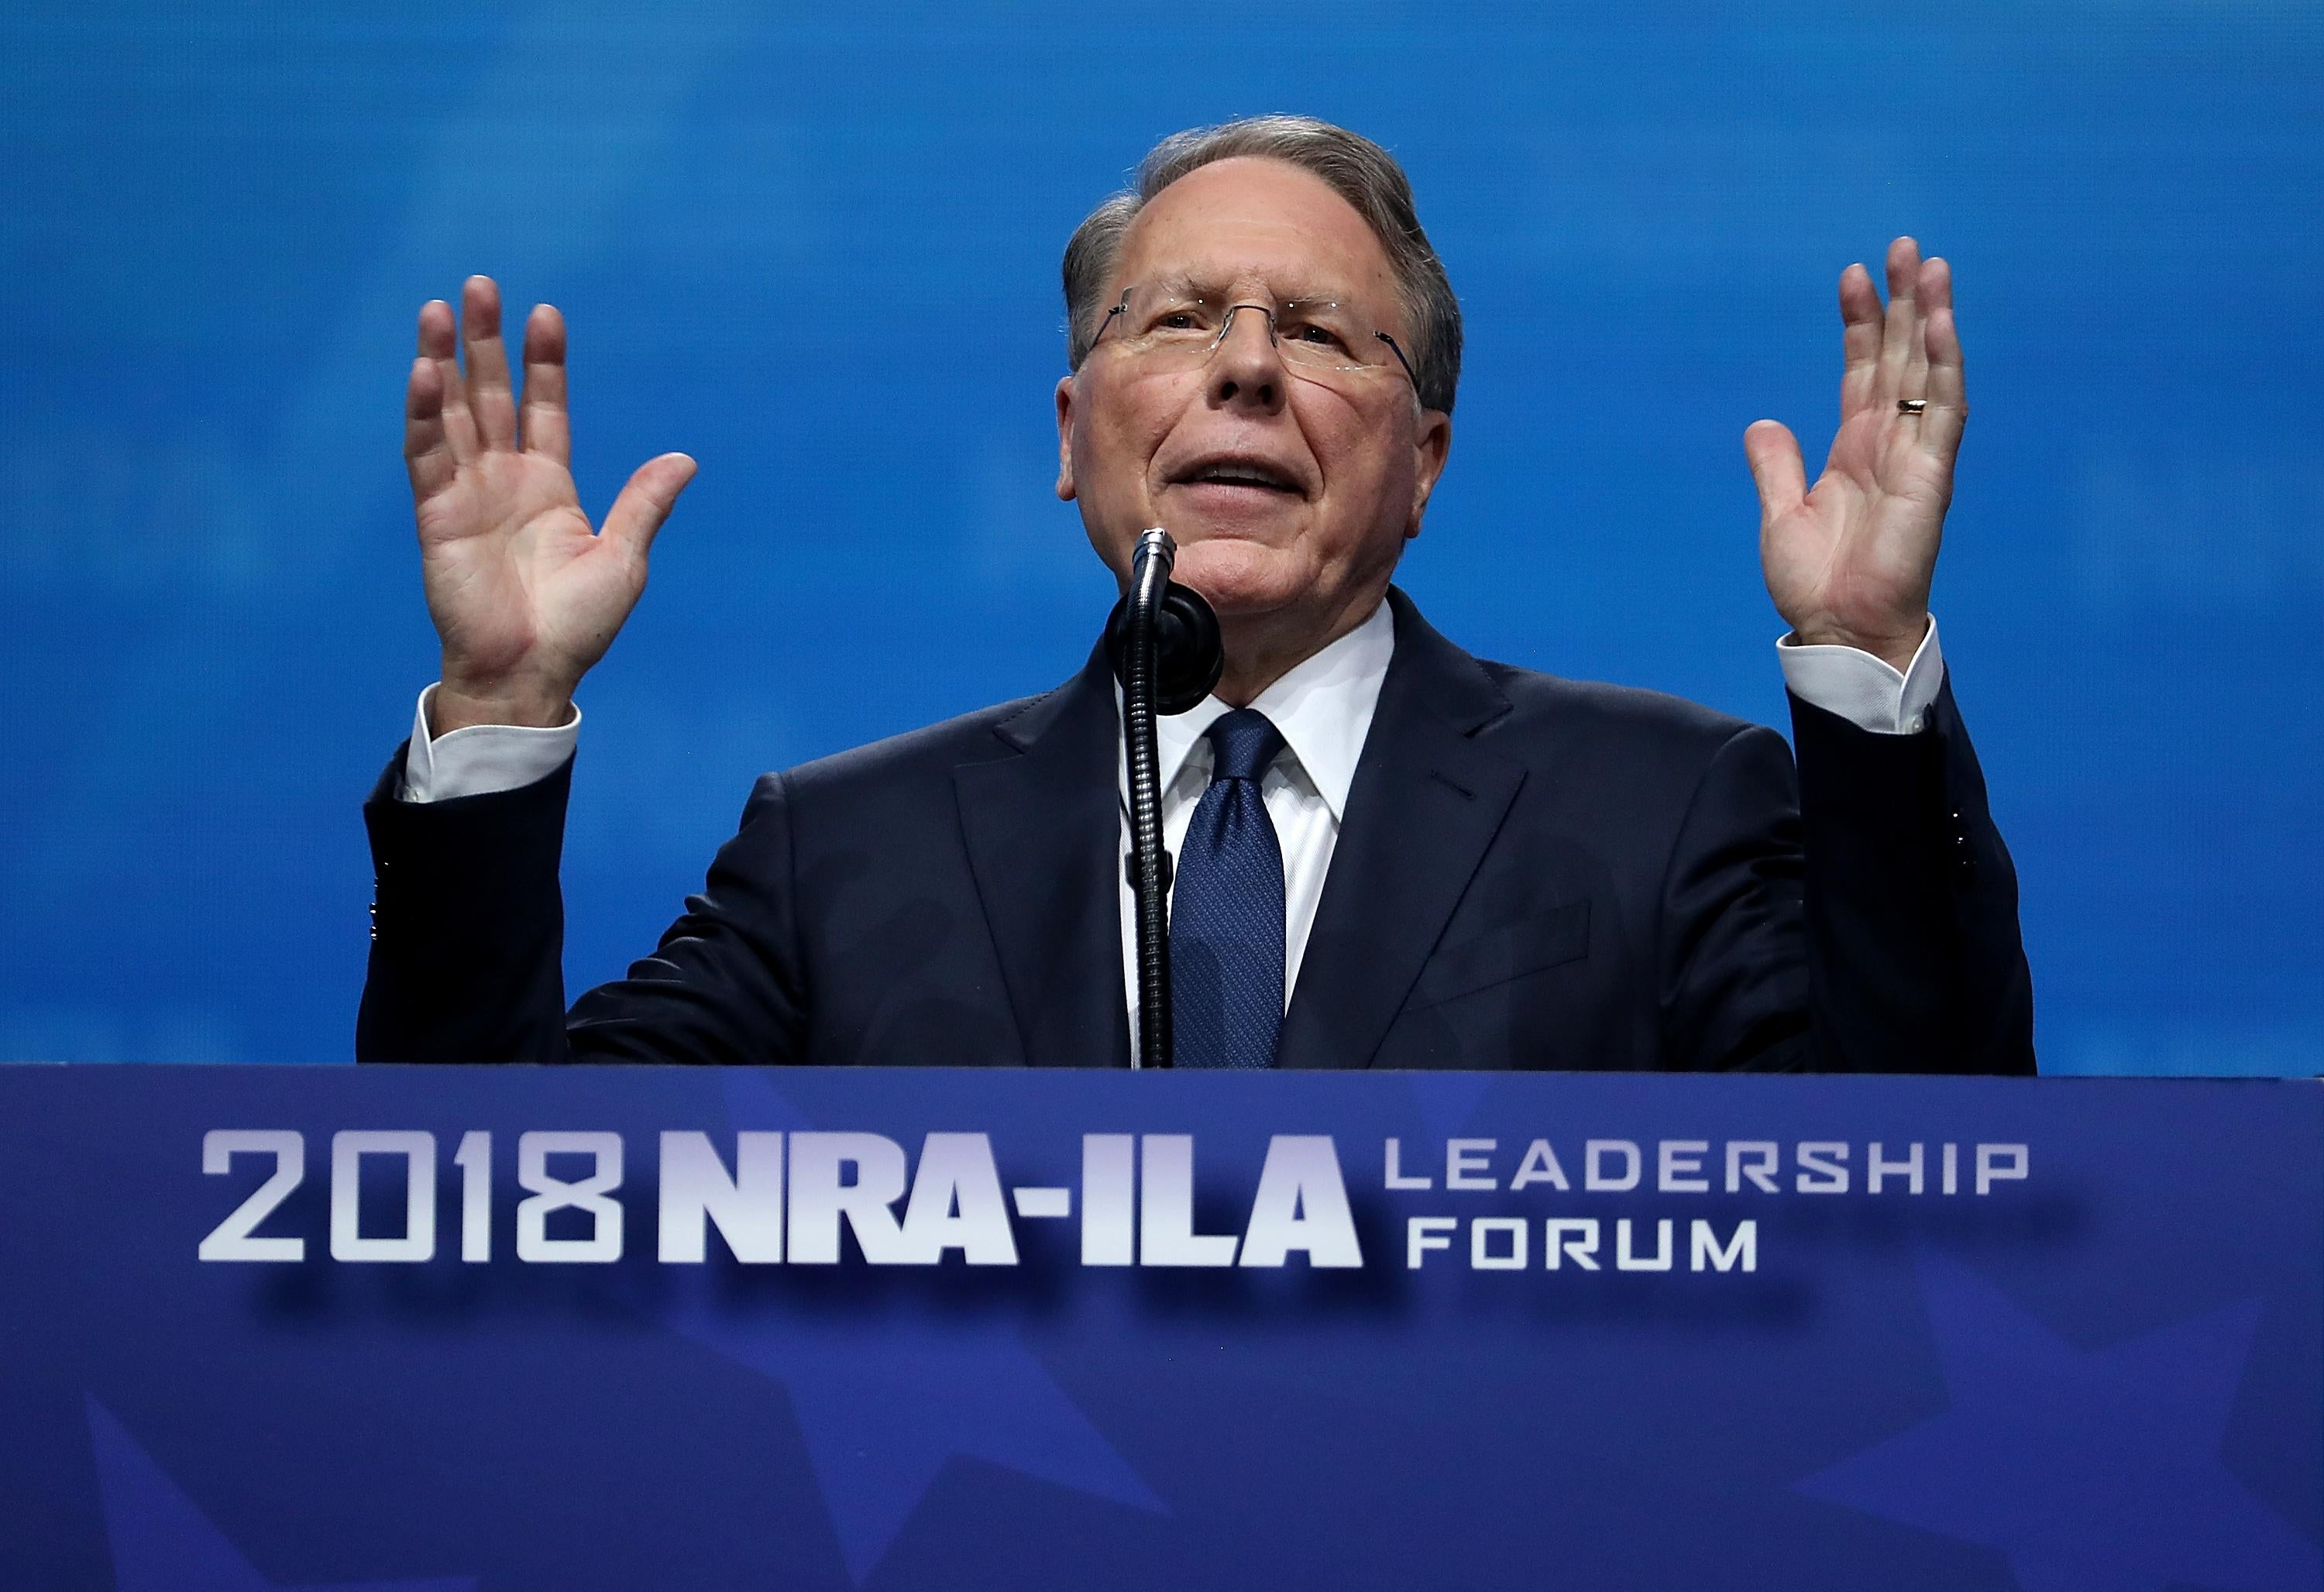 NRA Executive Vice President Wayne LaPierre speaks during the NRA Annual Meeting on May 4, 2018, in Dallas, Texas.